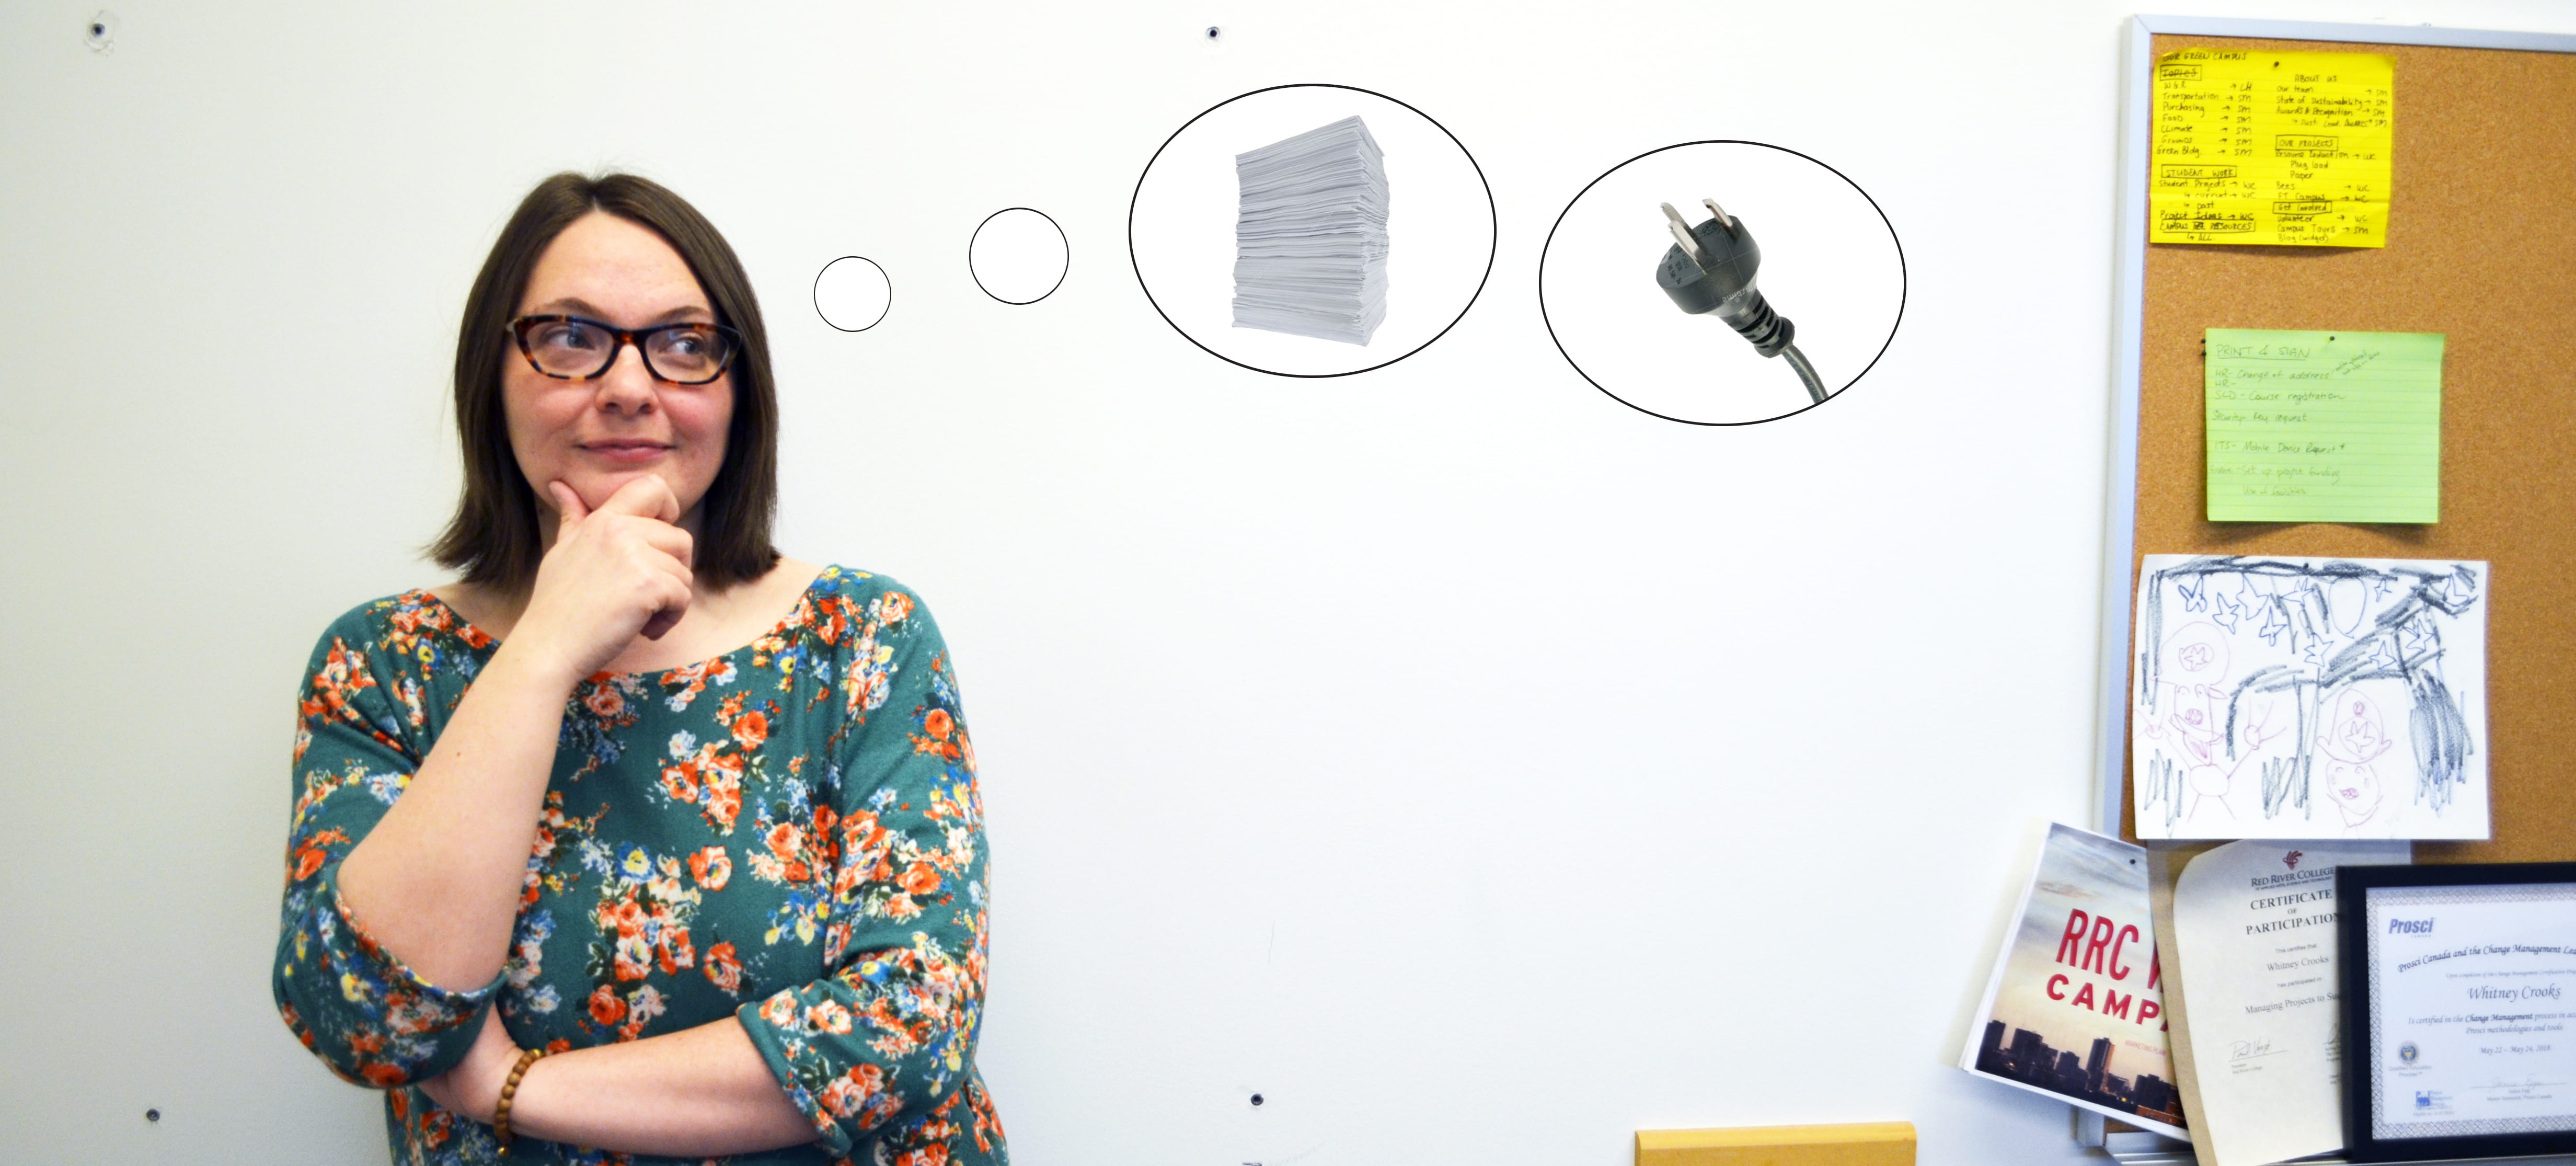 Whitney Crooks, Resource Reduction Specialist, ponders the concepts of paper and plug load reduction through little thought bubbles in her office.